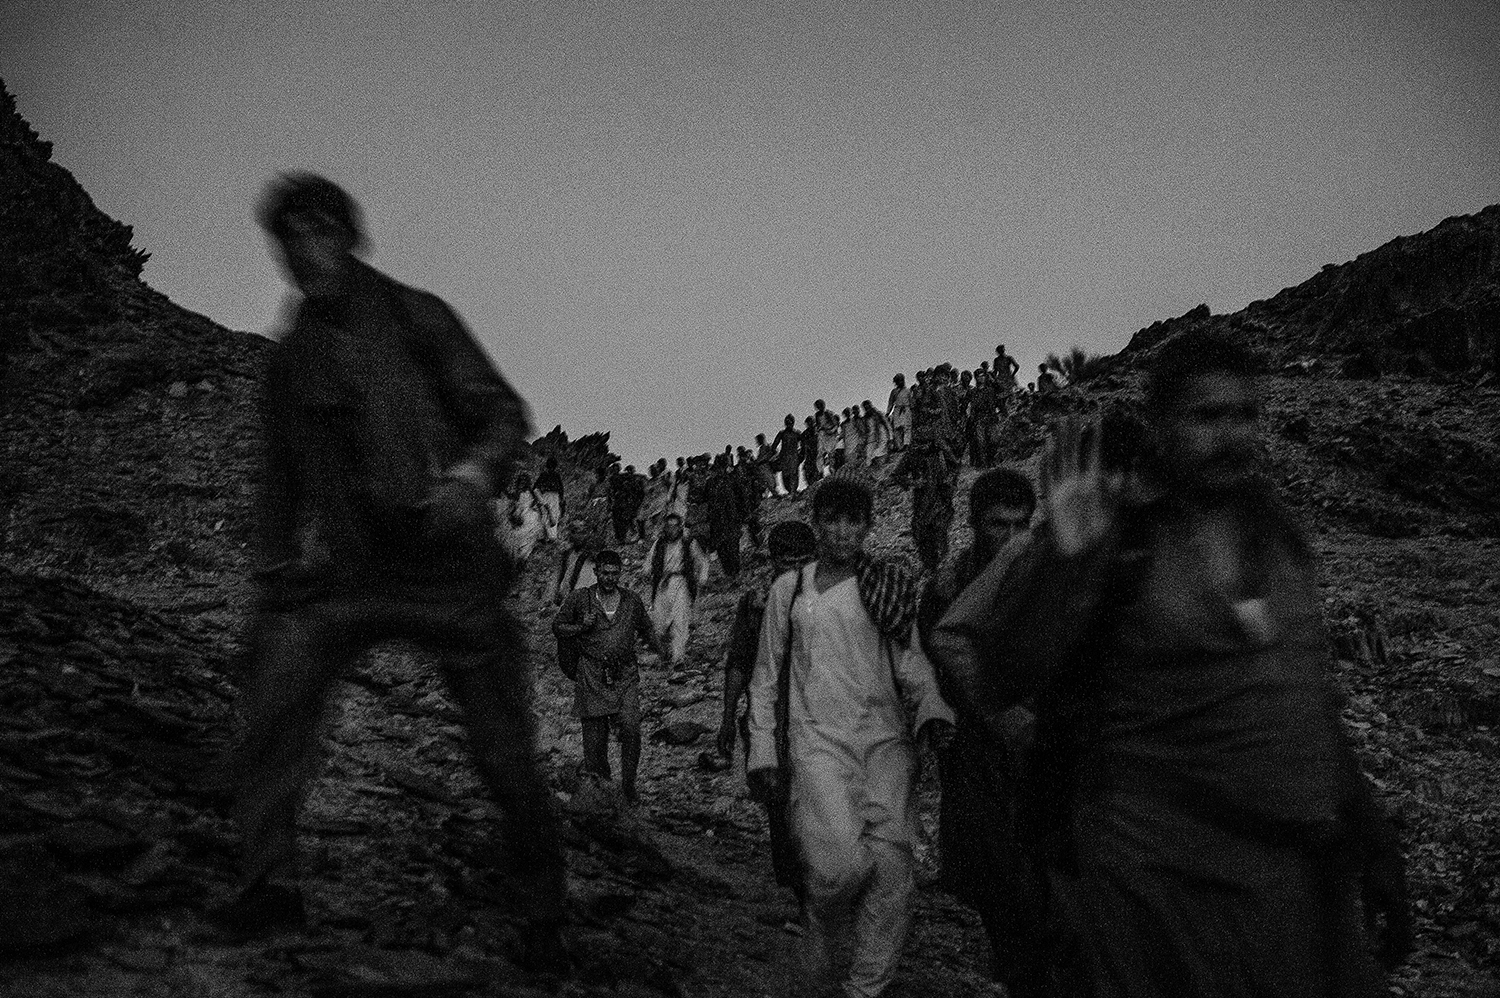 July 31, 2018  Iran, Sistan and Baluchistan province.300 Afghan refugees arrived in Iran, after 12 hours walking on the border path of Iran and Pakistan. They will stay at Iran or will go to turkey and Greece. Iranian police is fighting against human smuggling although there are some accusations that they also assist smugglers.